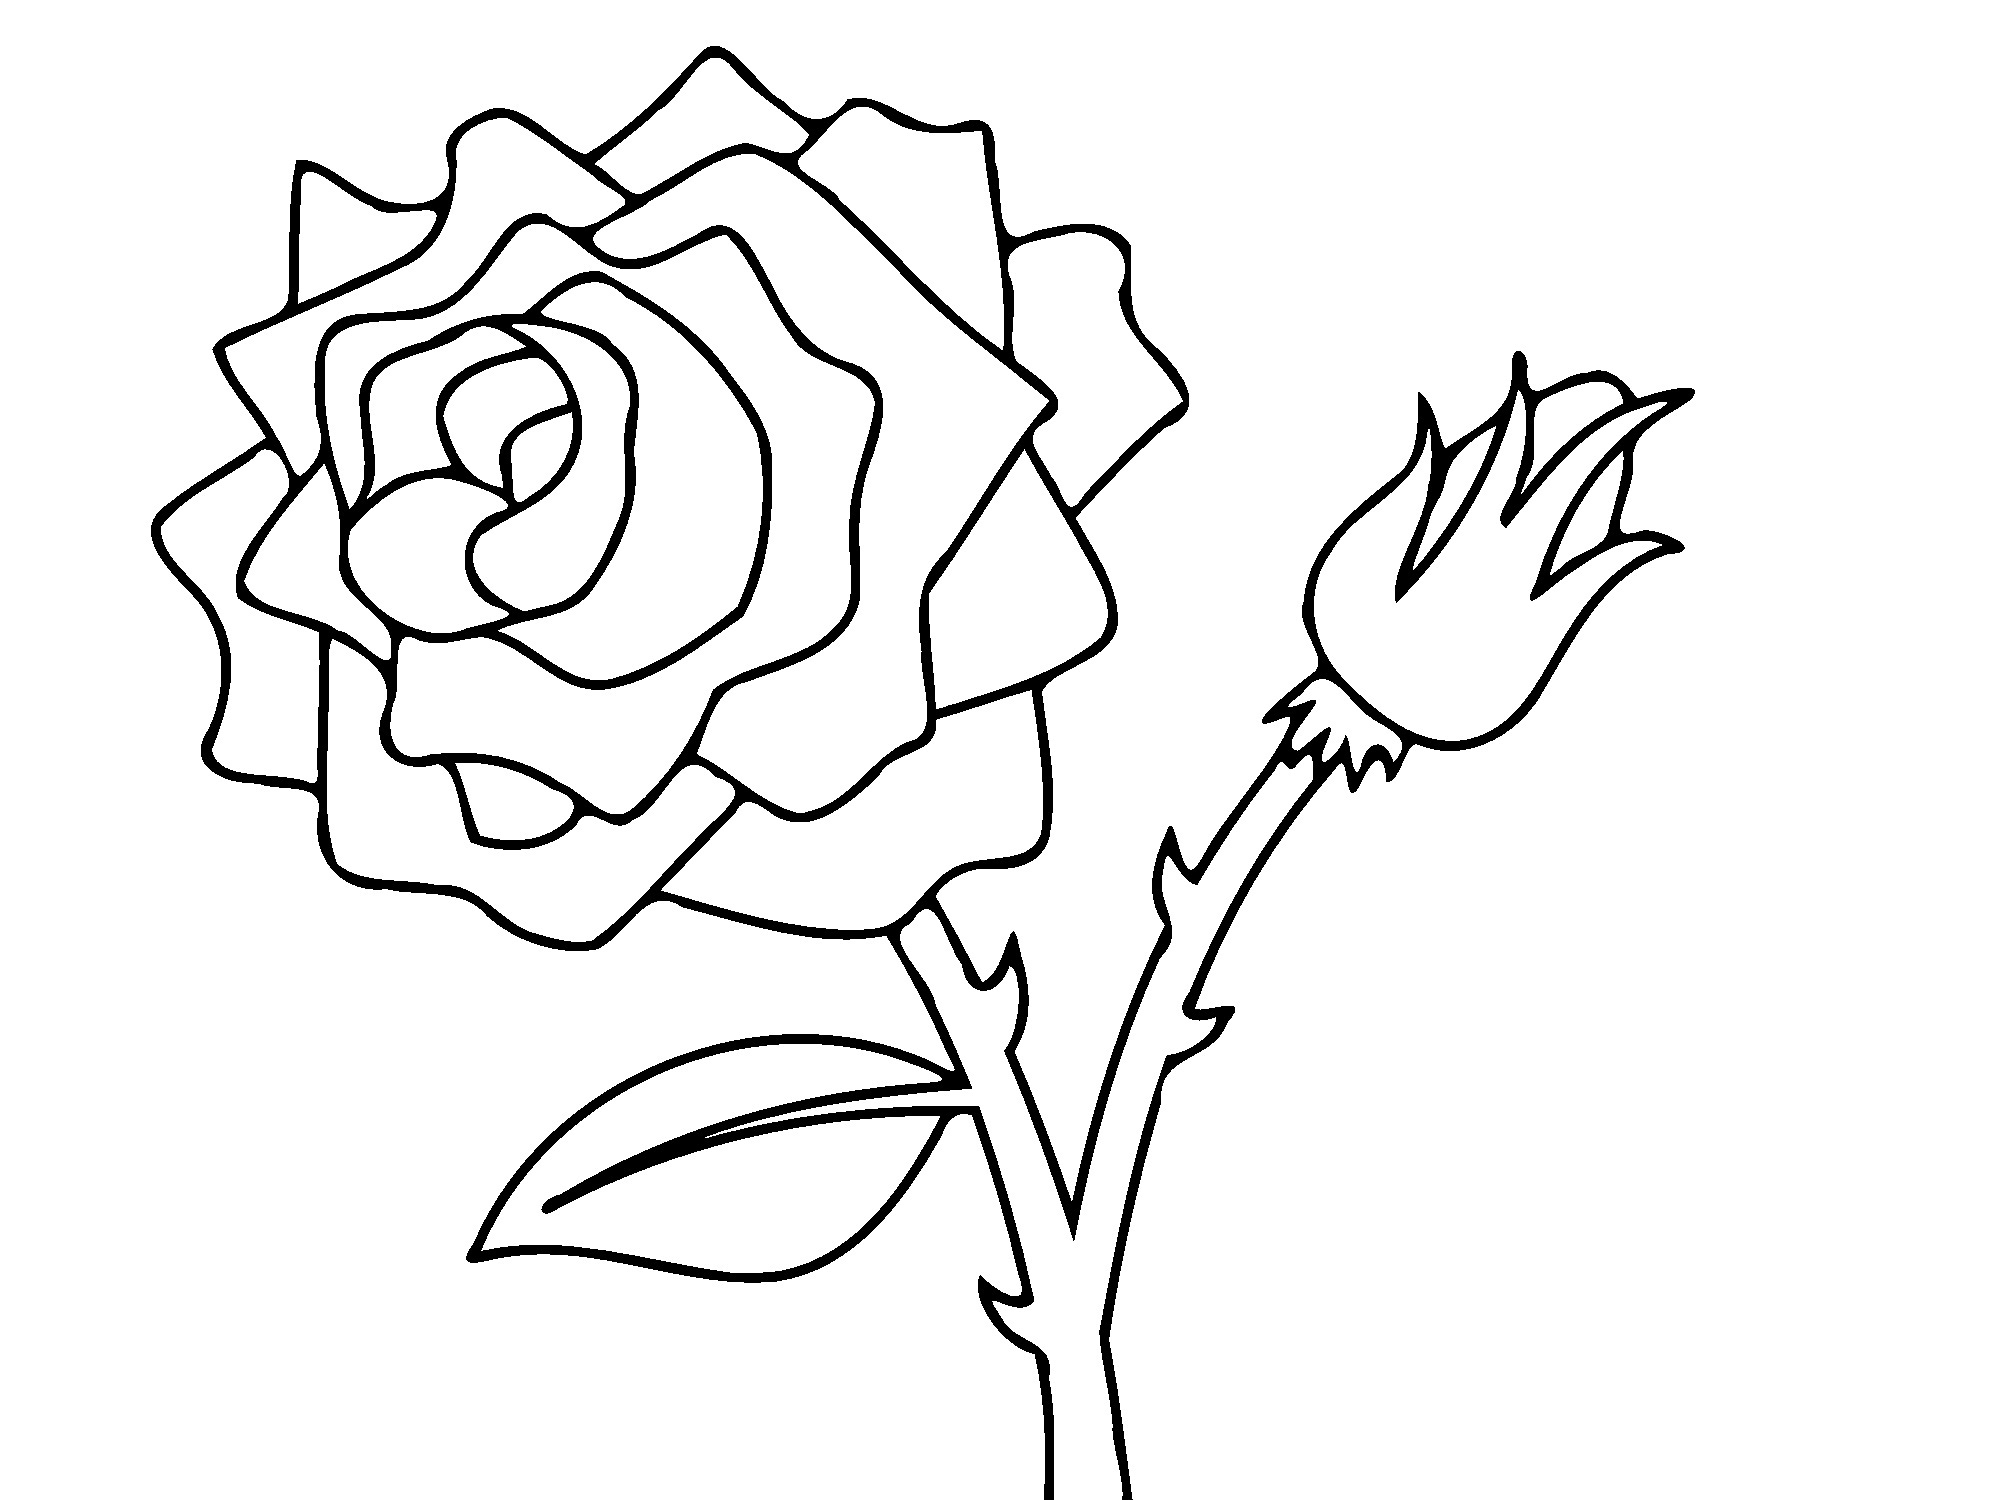 coloring flower rose free printable roses coloring pages for kids coloring rose flower